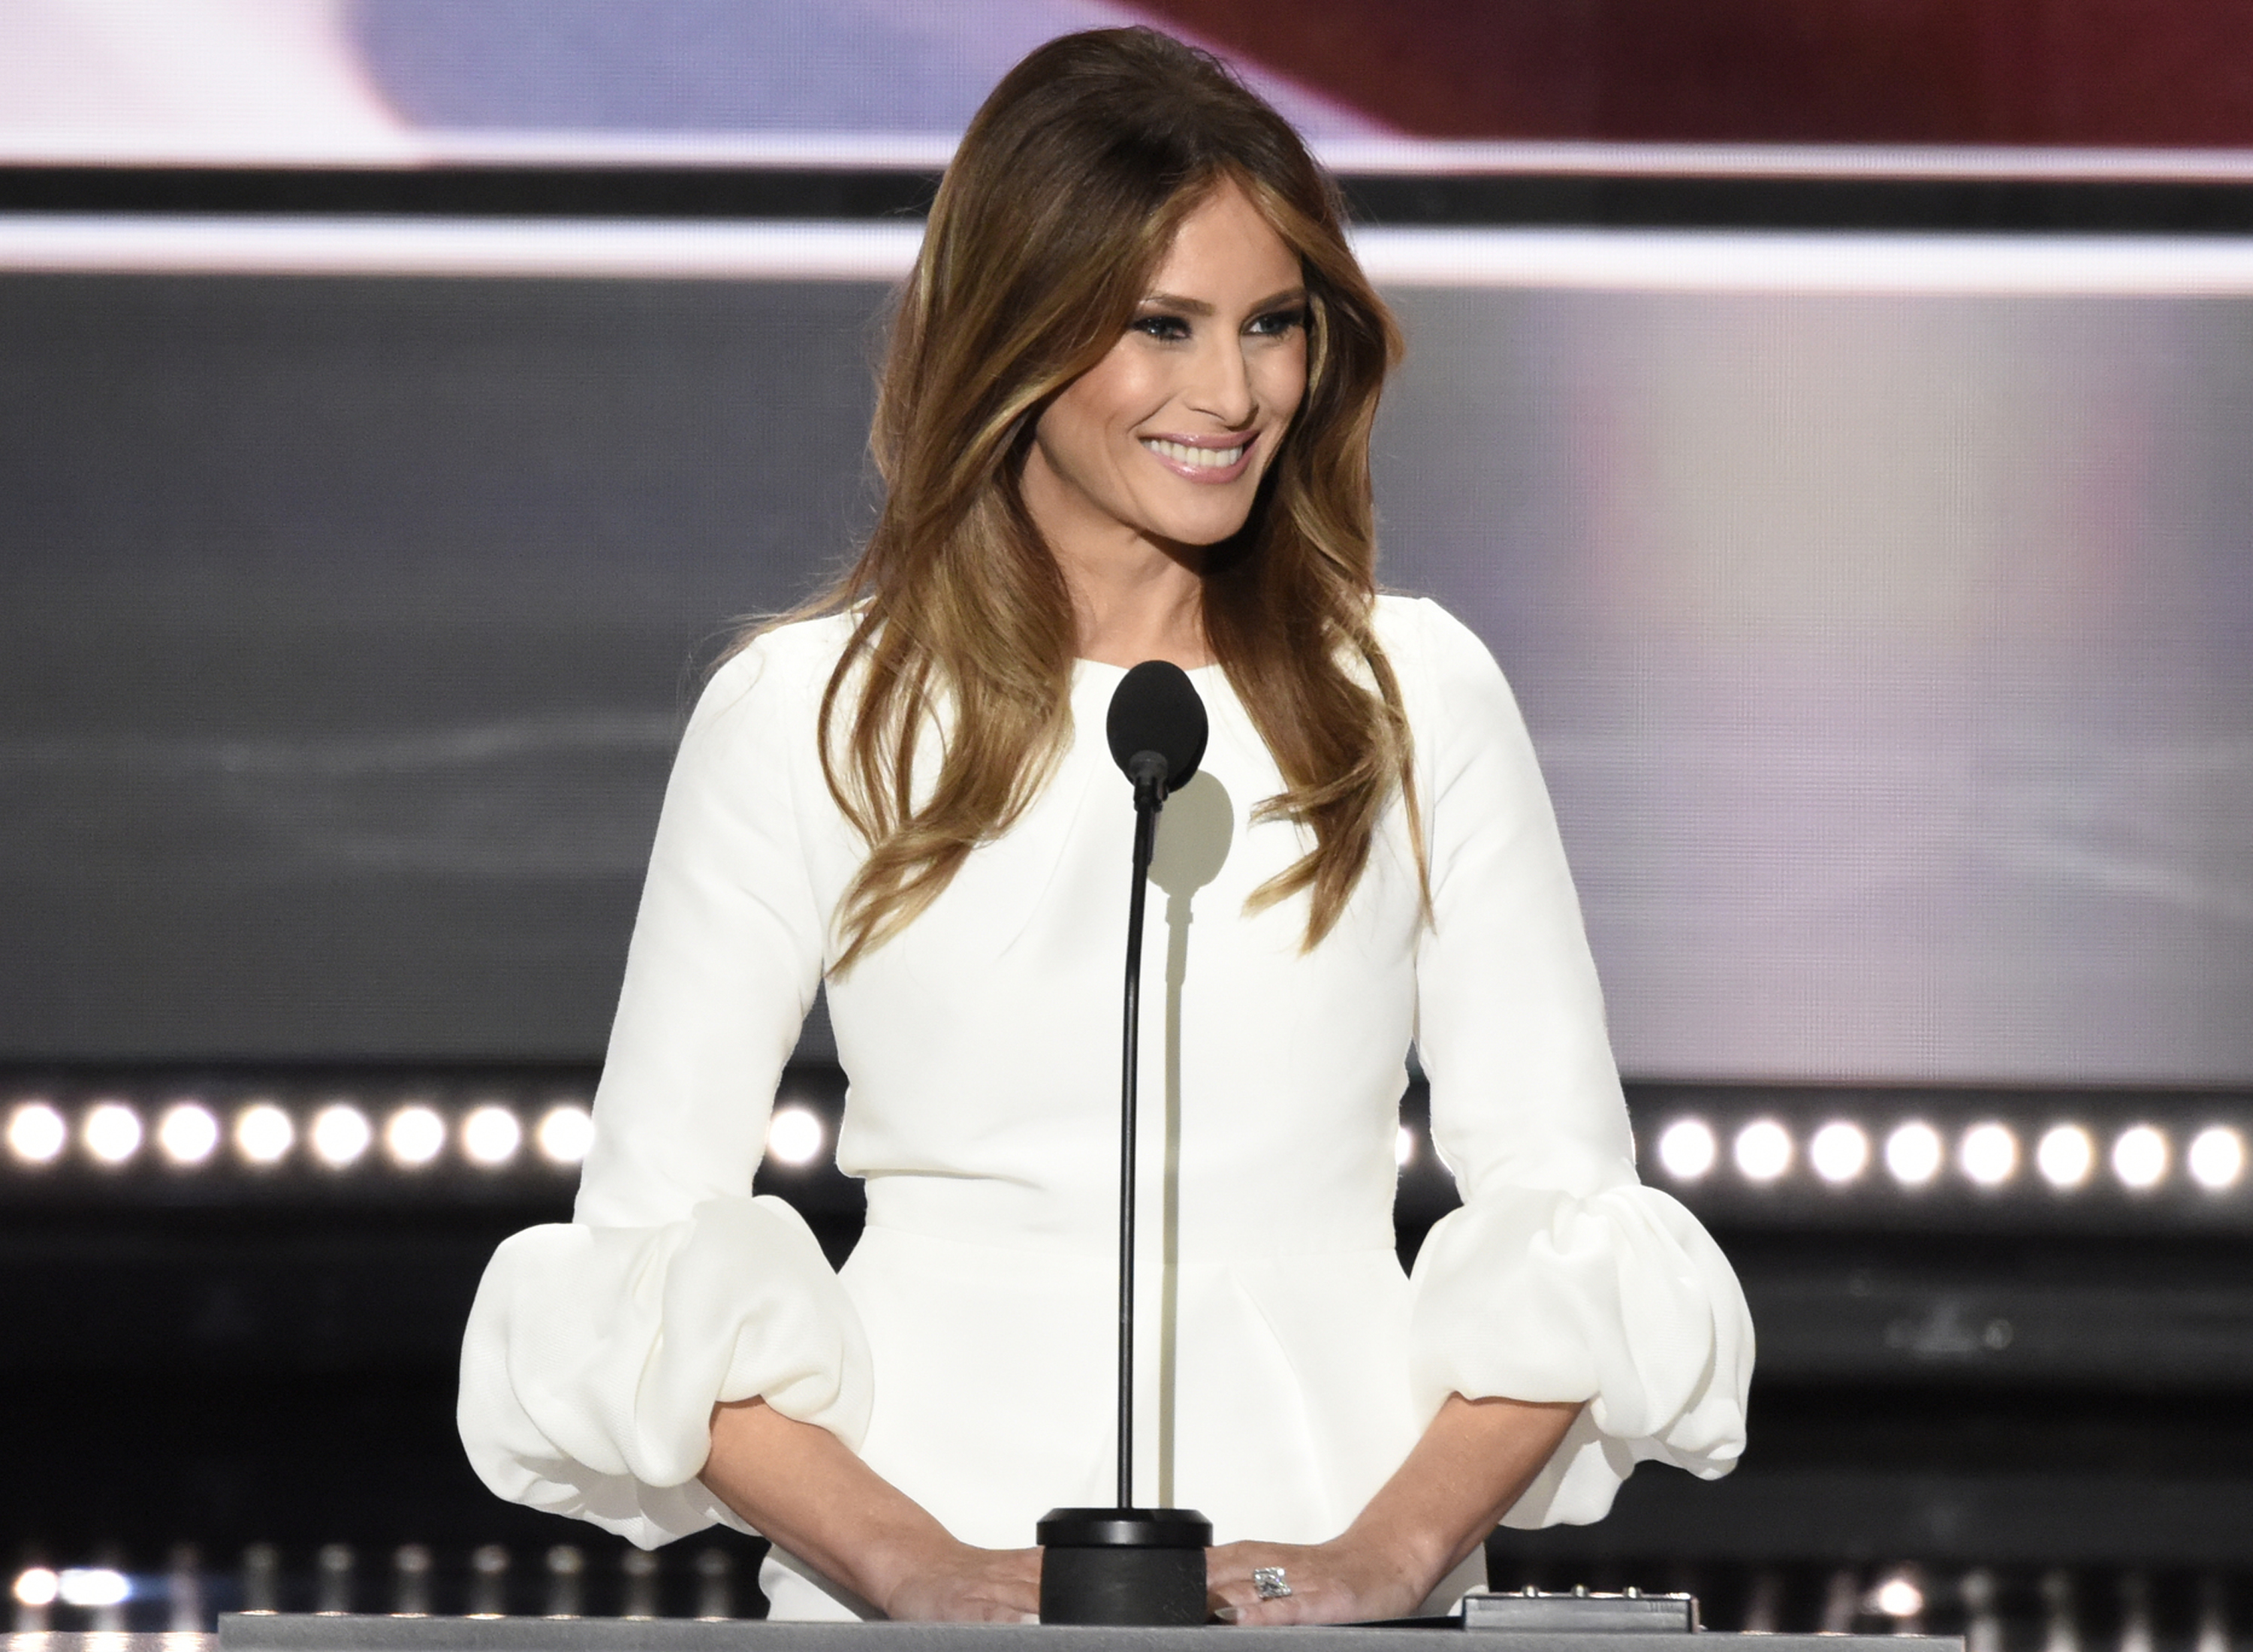 Who Is Dressing Melania Trump for the Inauguration?